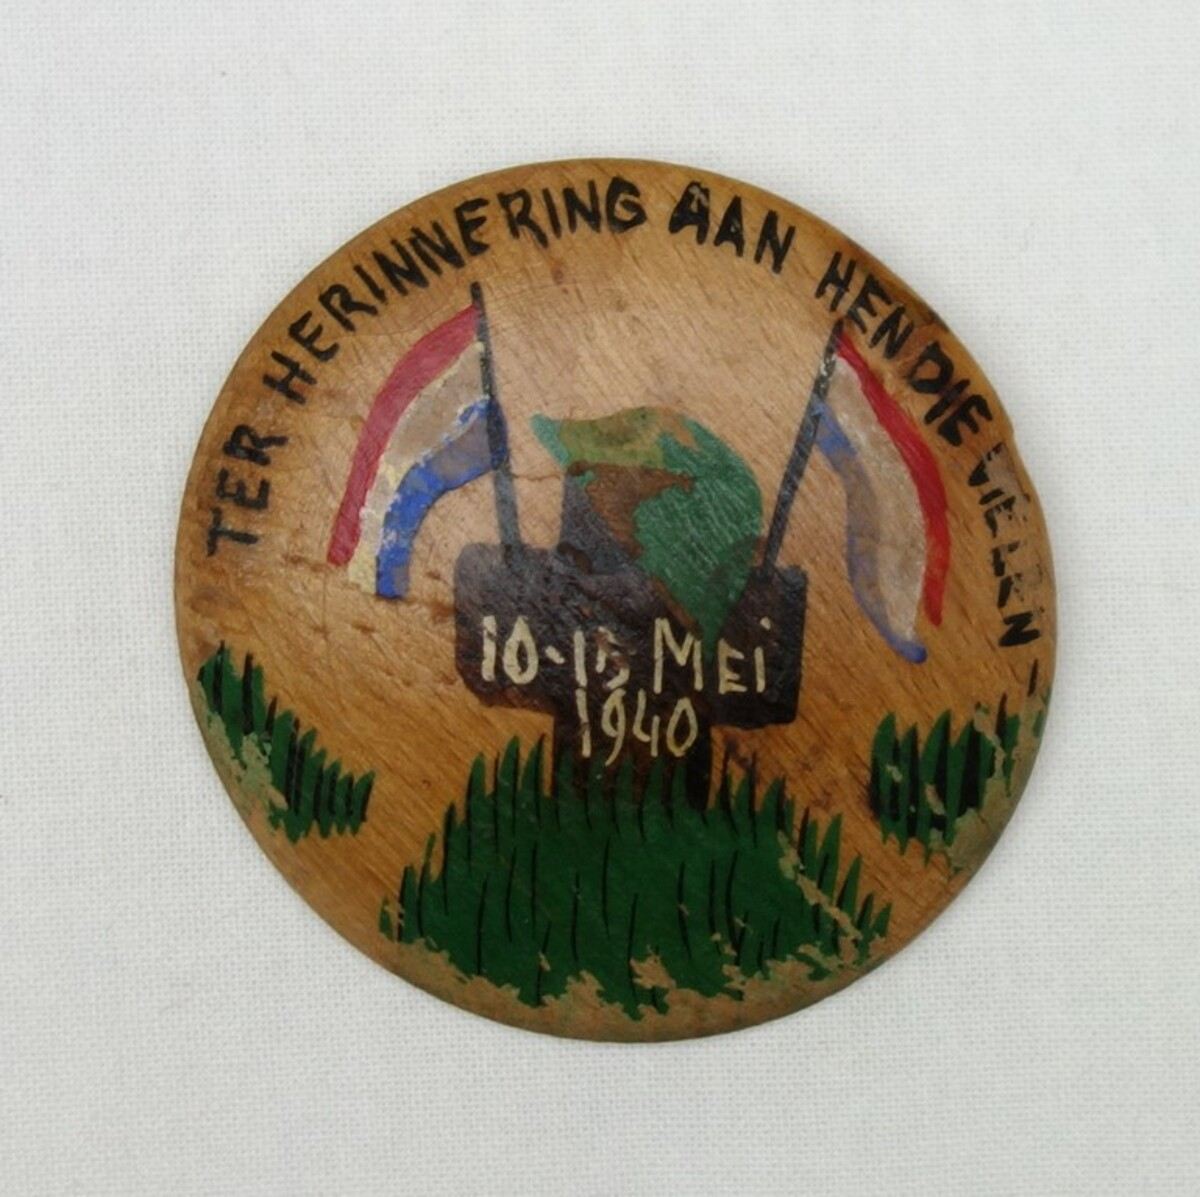 A painted brooch made of wood, with a personal memento of the German attack on The Netherlands in May 1940. 'Ter herinnering aan hen die vielen. 10-15 mei 1940' (TRC 2019.2292).